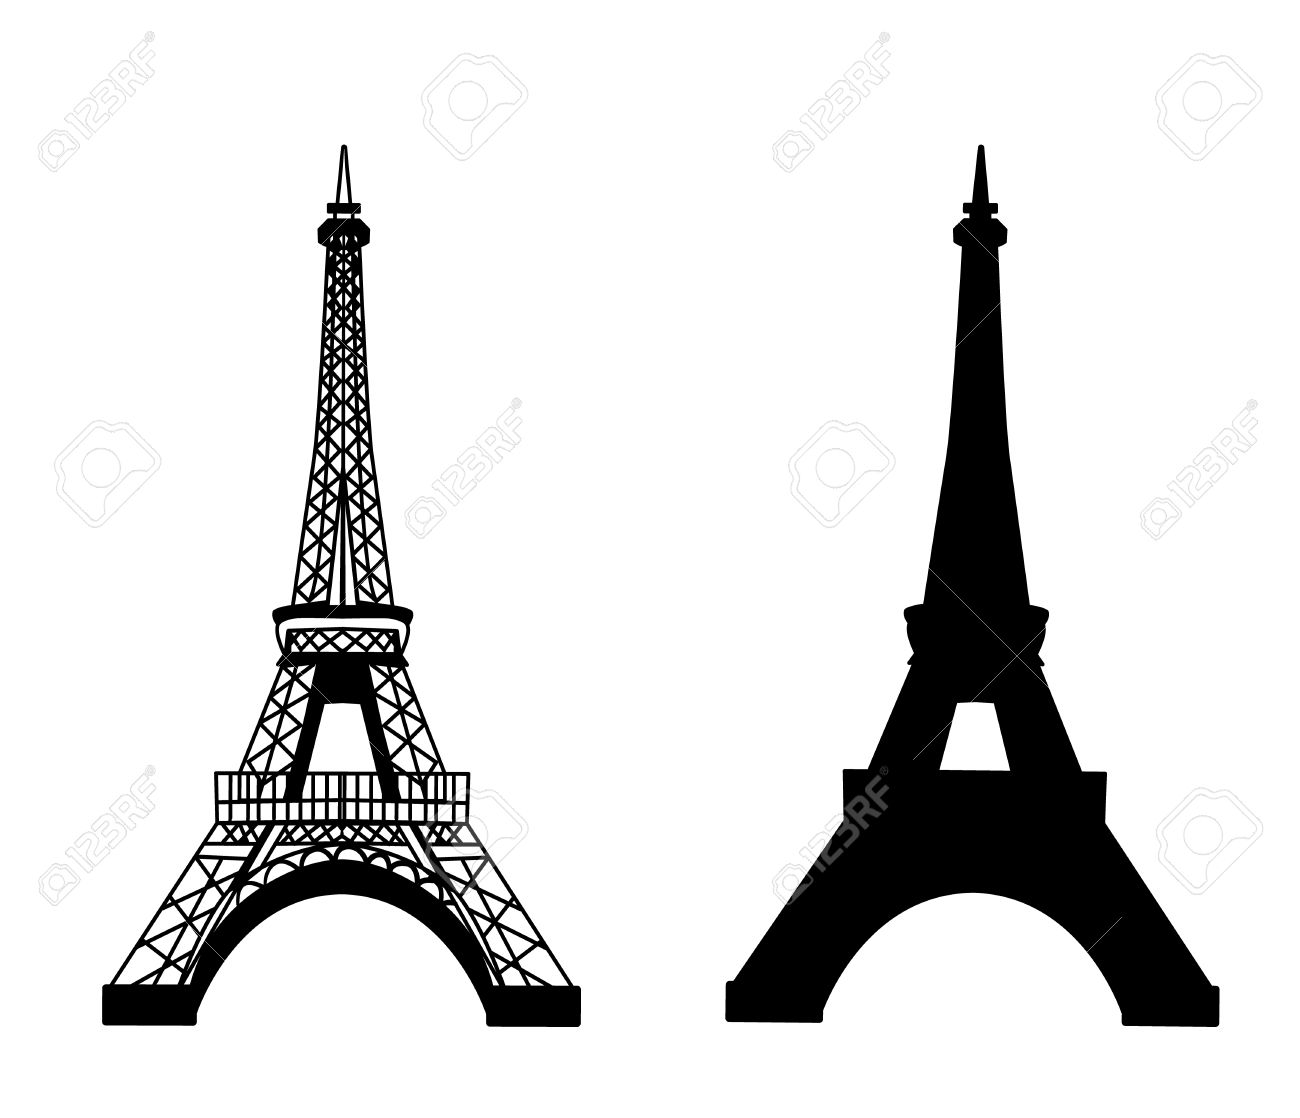 Eiffel tower isolated vector illustration black on white set eiffel tower isolated vector illustration black on white set stock vector 52361218 thecheapjerseys Gallery